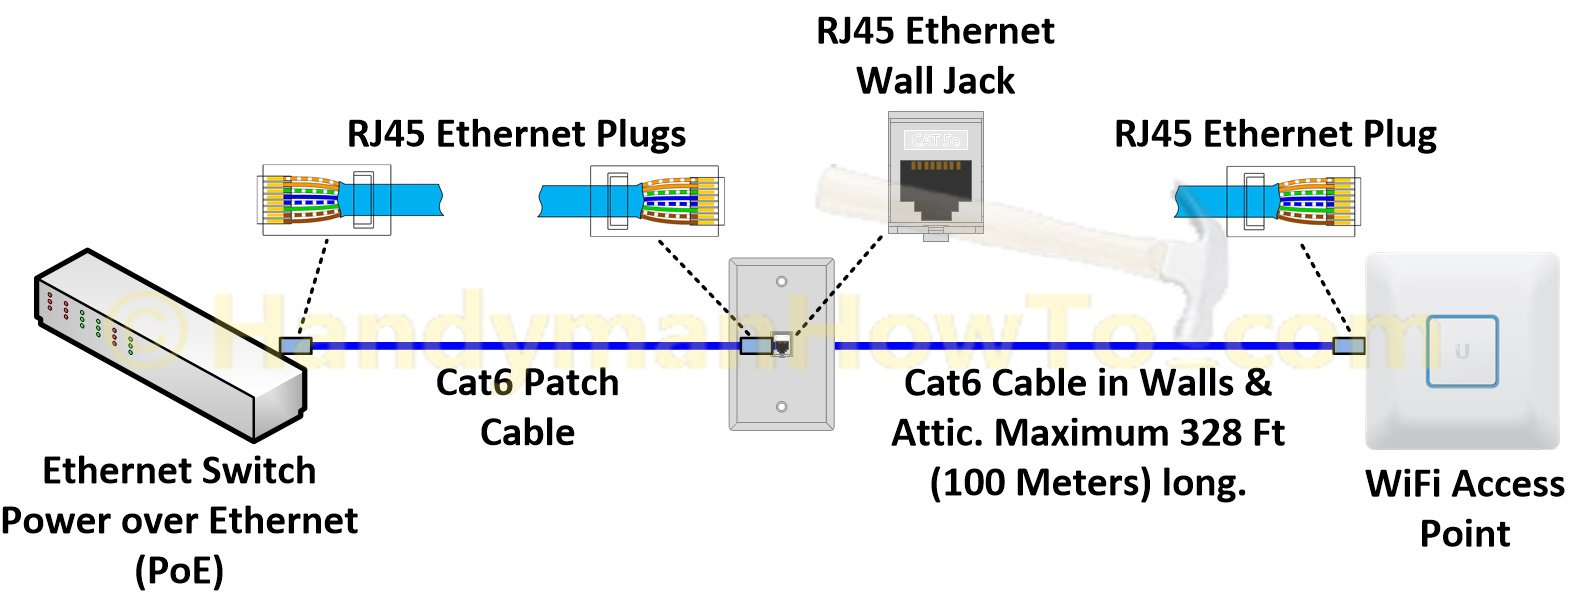 Poe Rj45 Jack Wiring Diagram | Wiring Diagram - Poe Wiring Diagram